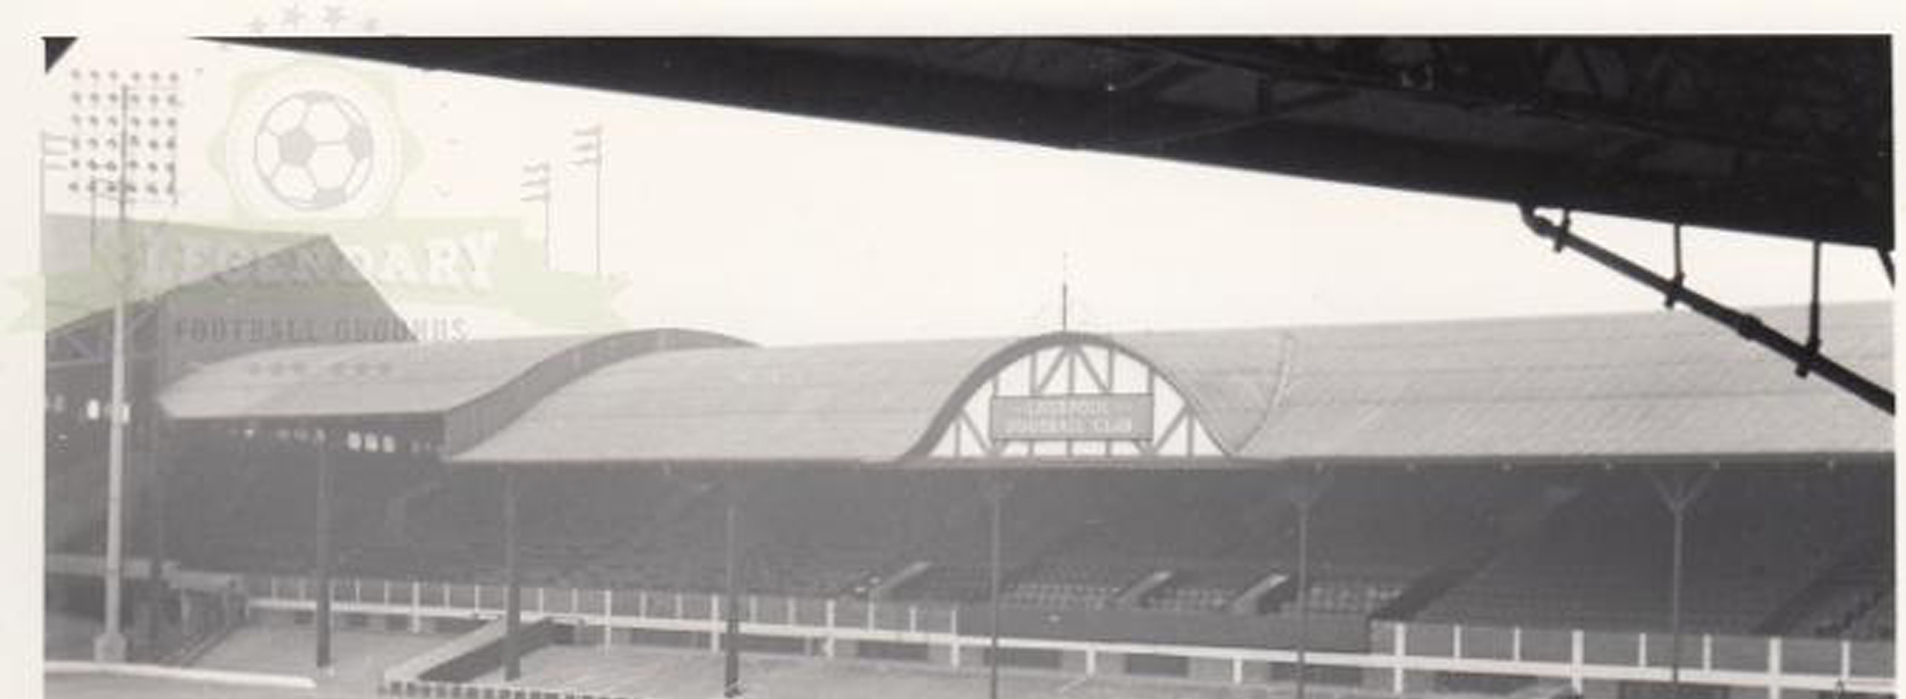 resized-Liverpool-Anfield-Main-Stand-1-1969-Leitch-BW_small